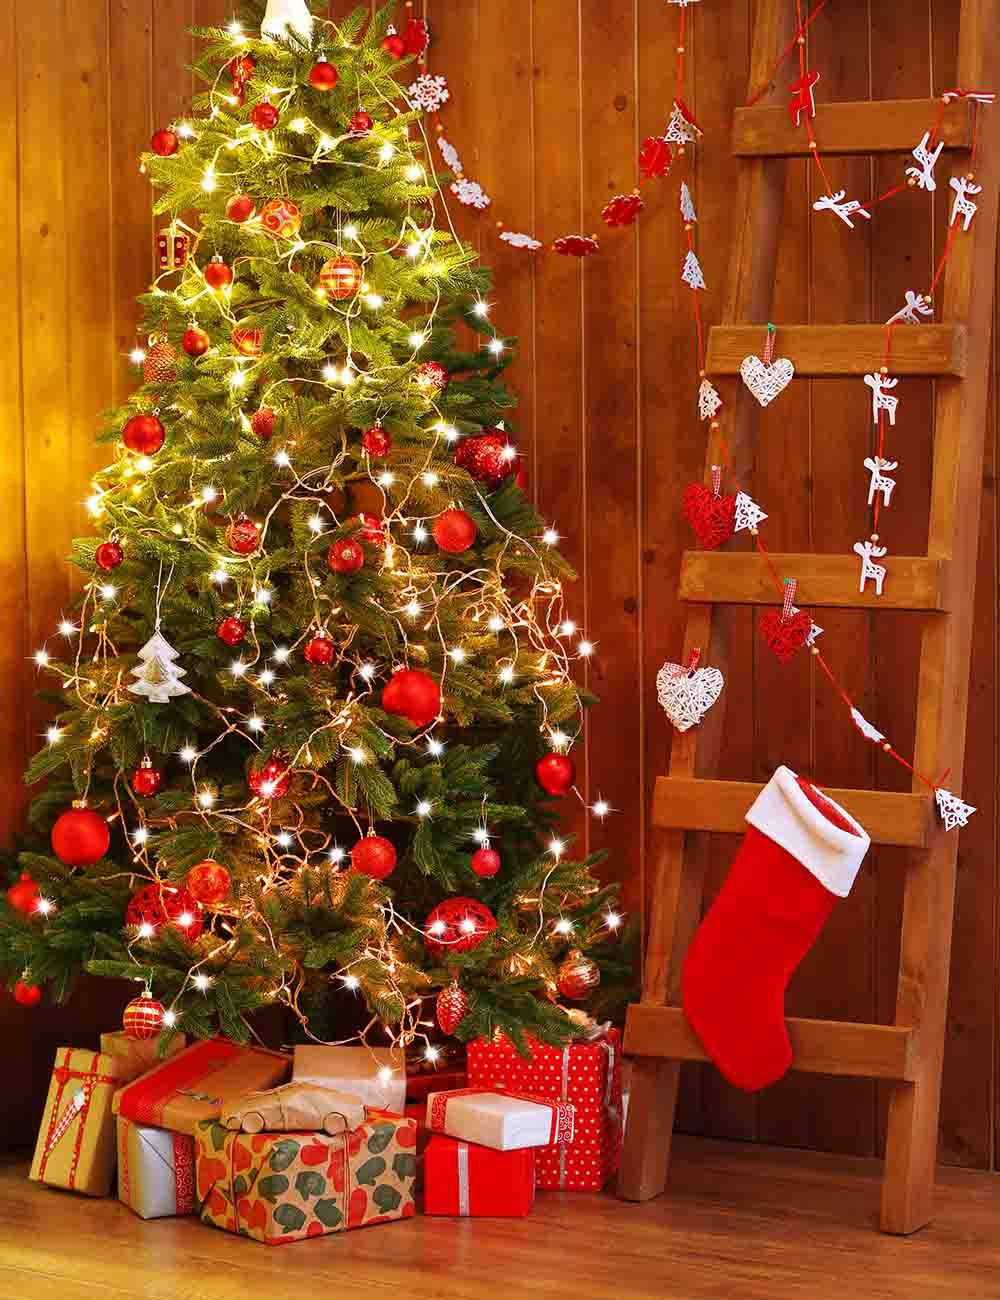 Christmas Stocks Hang On Ladder With Christmas Tree For Holiday Backdrop - Shop Backdrop